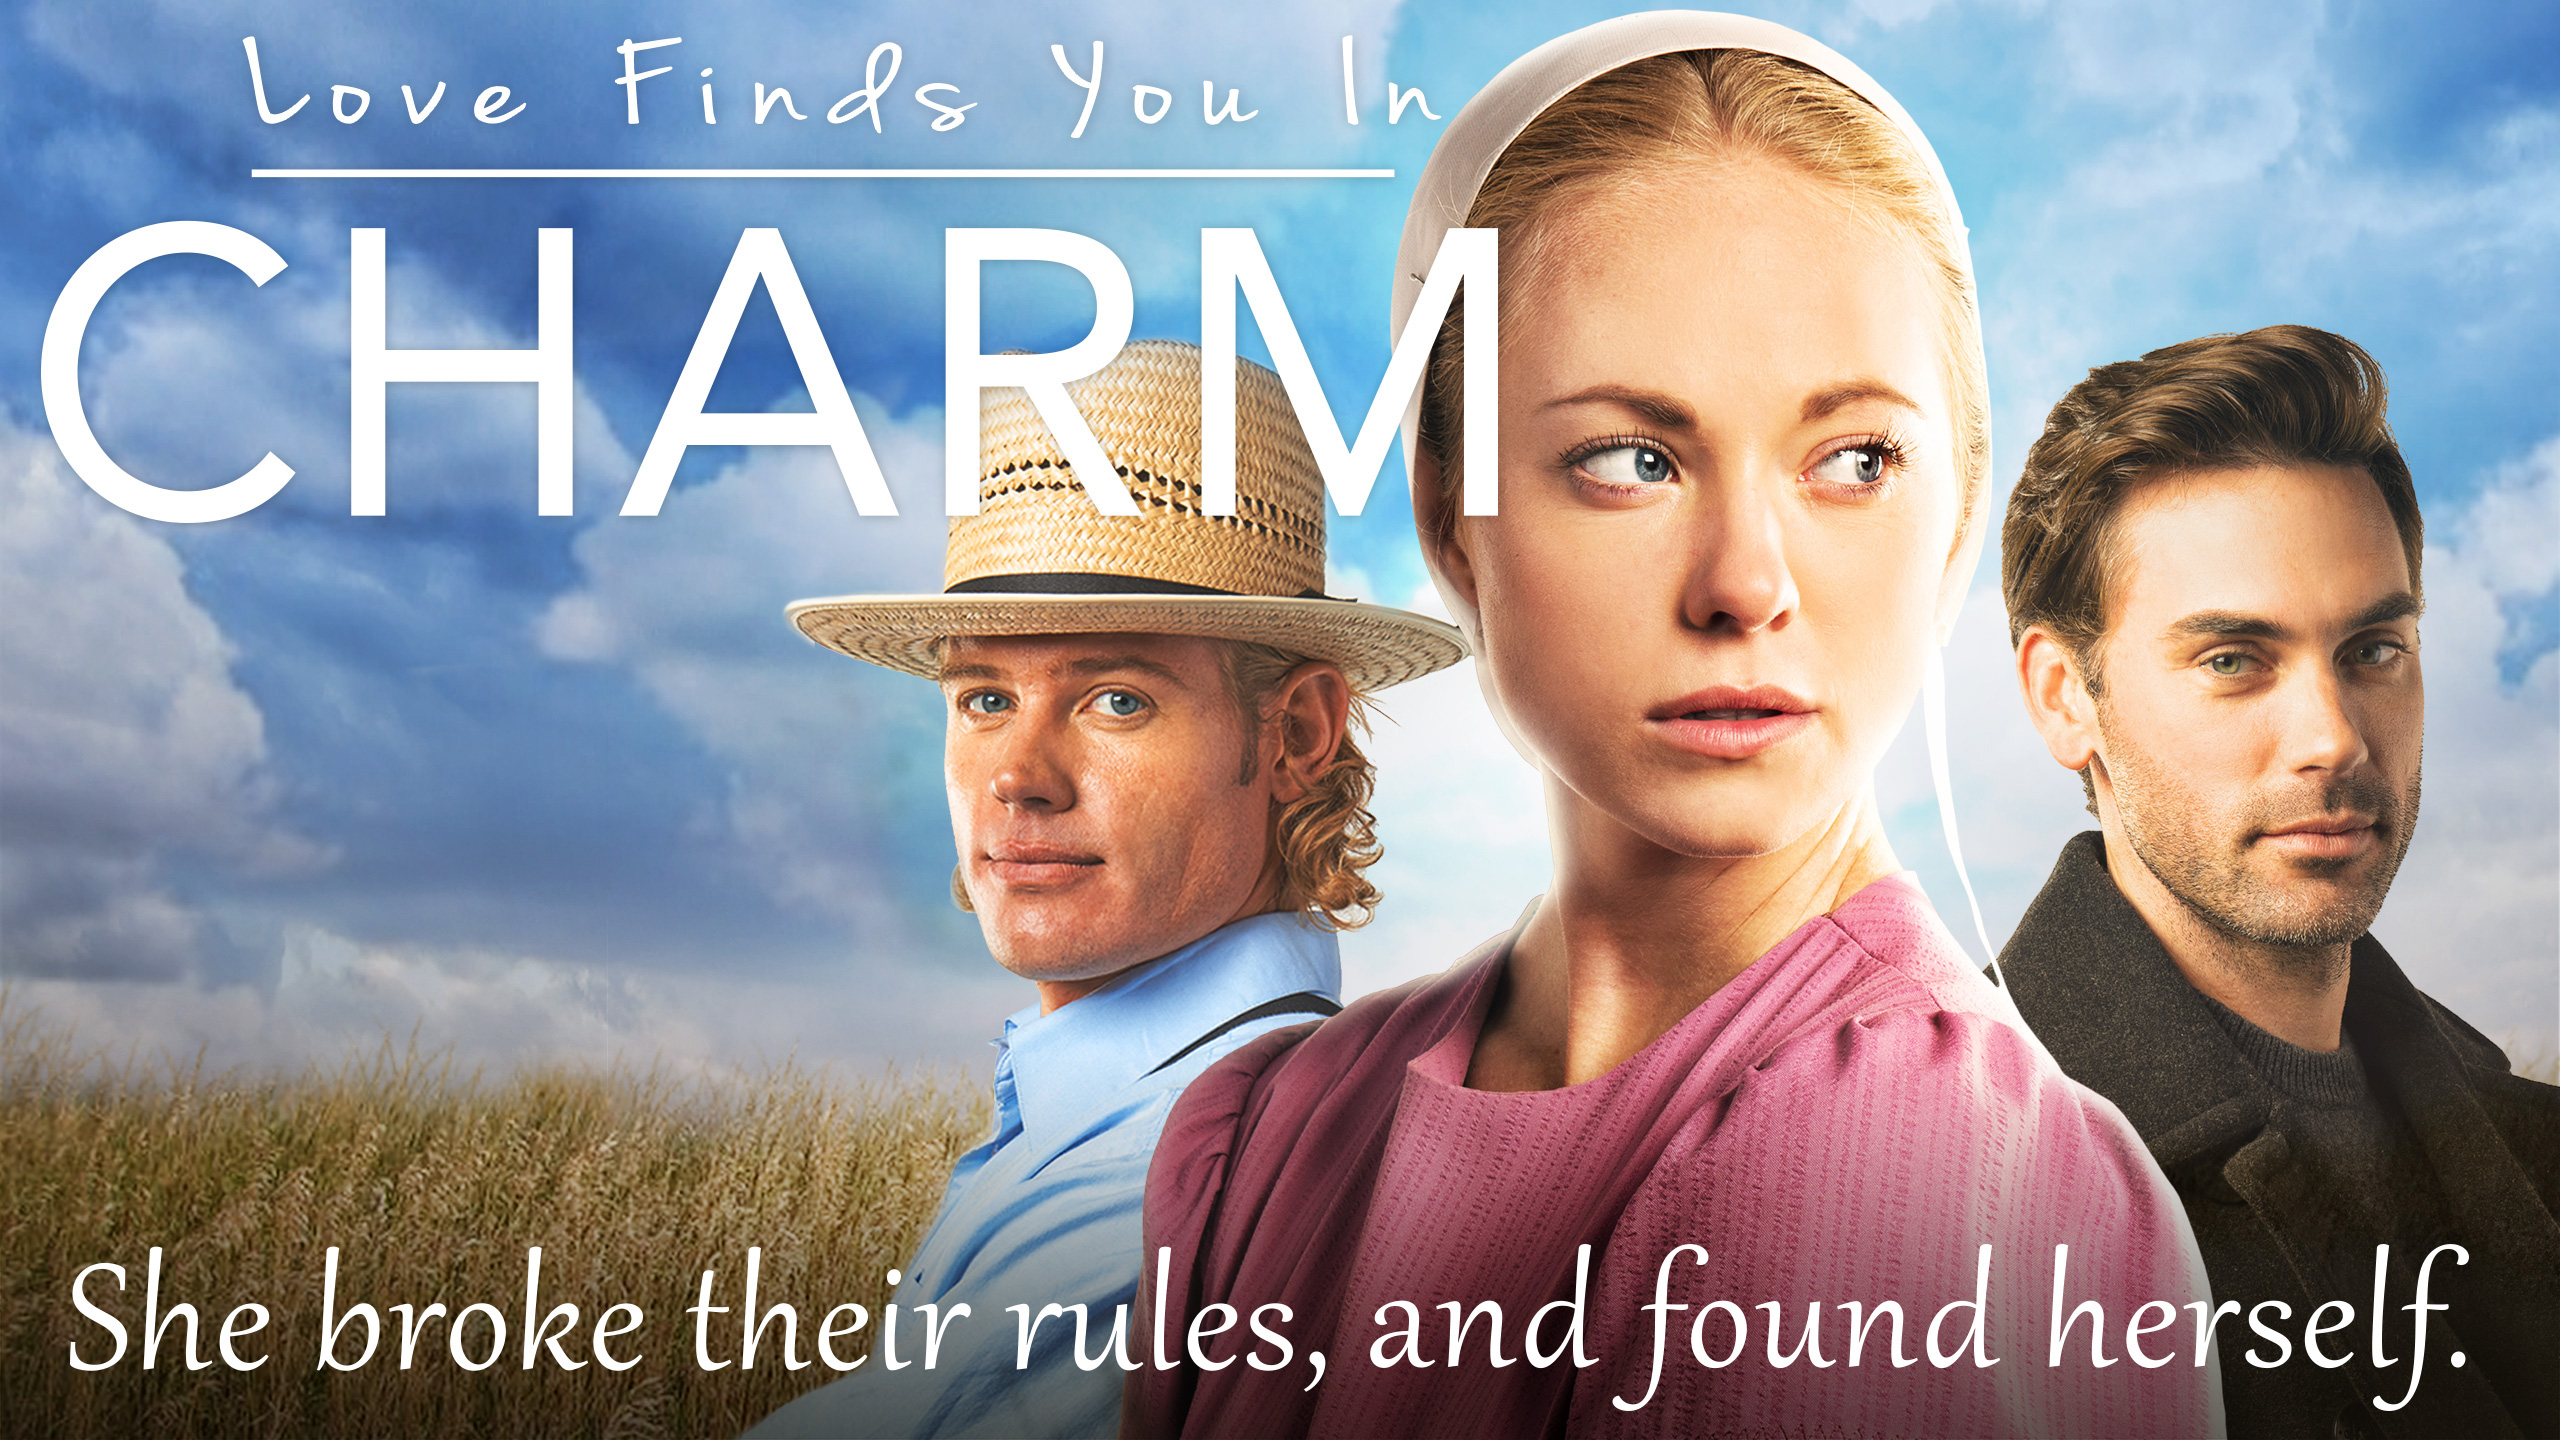 Love Find You In Charm Trailer